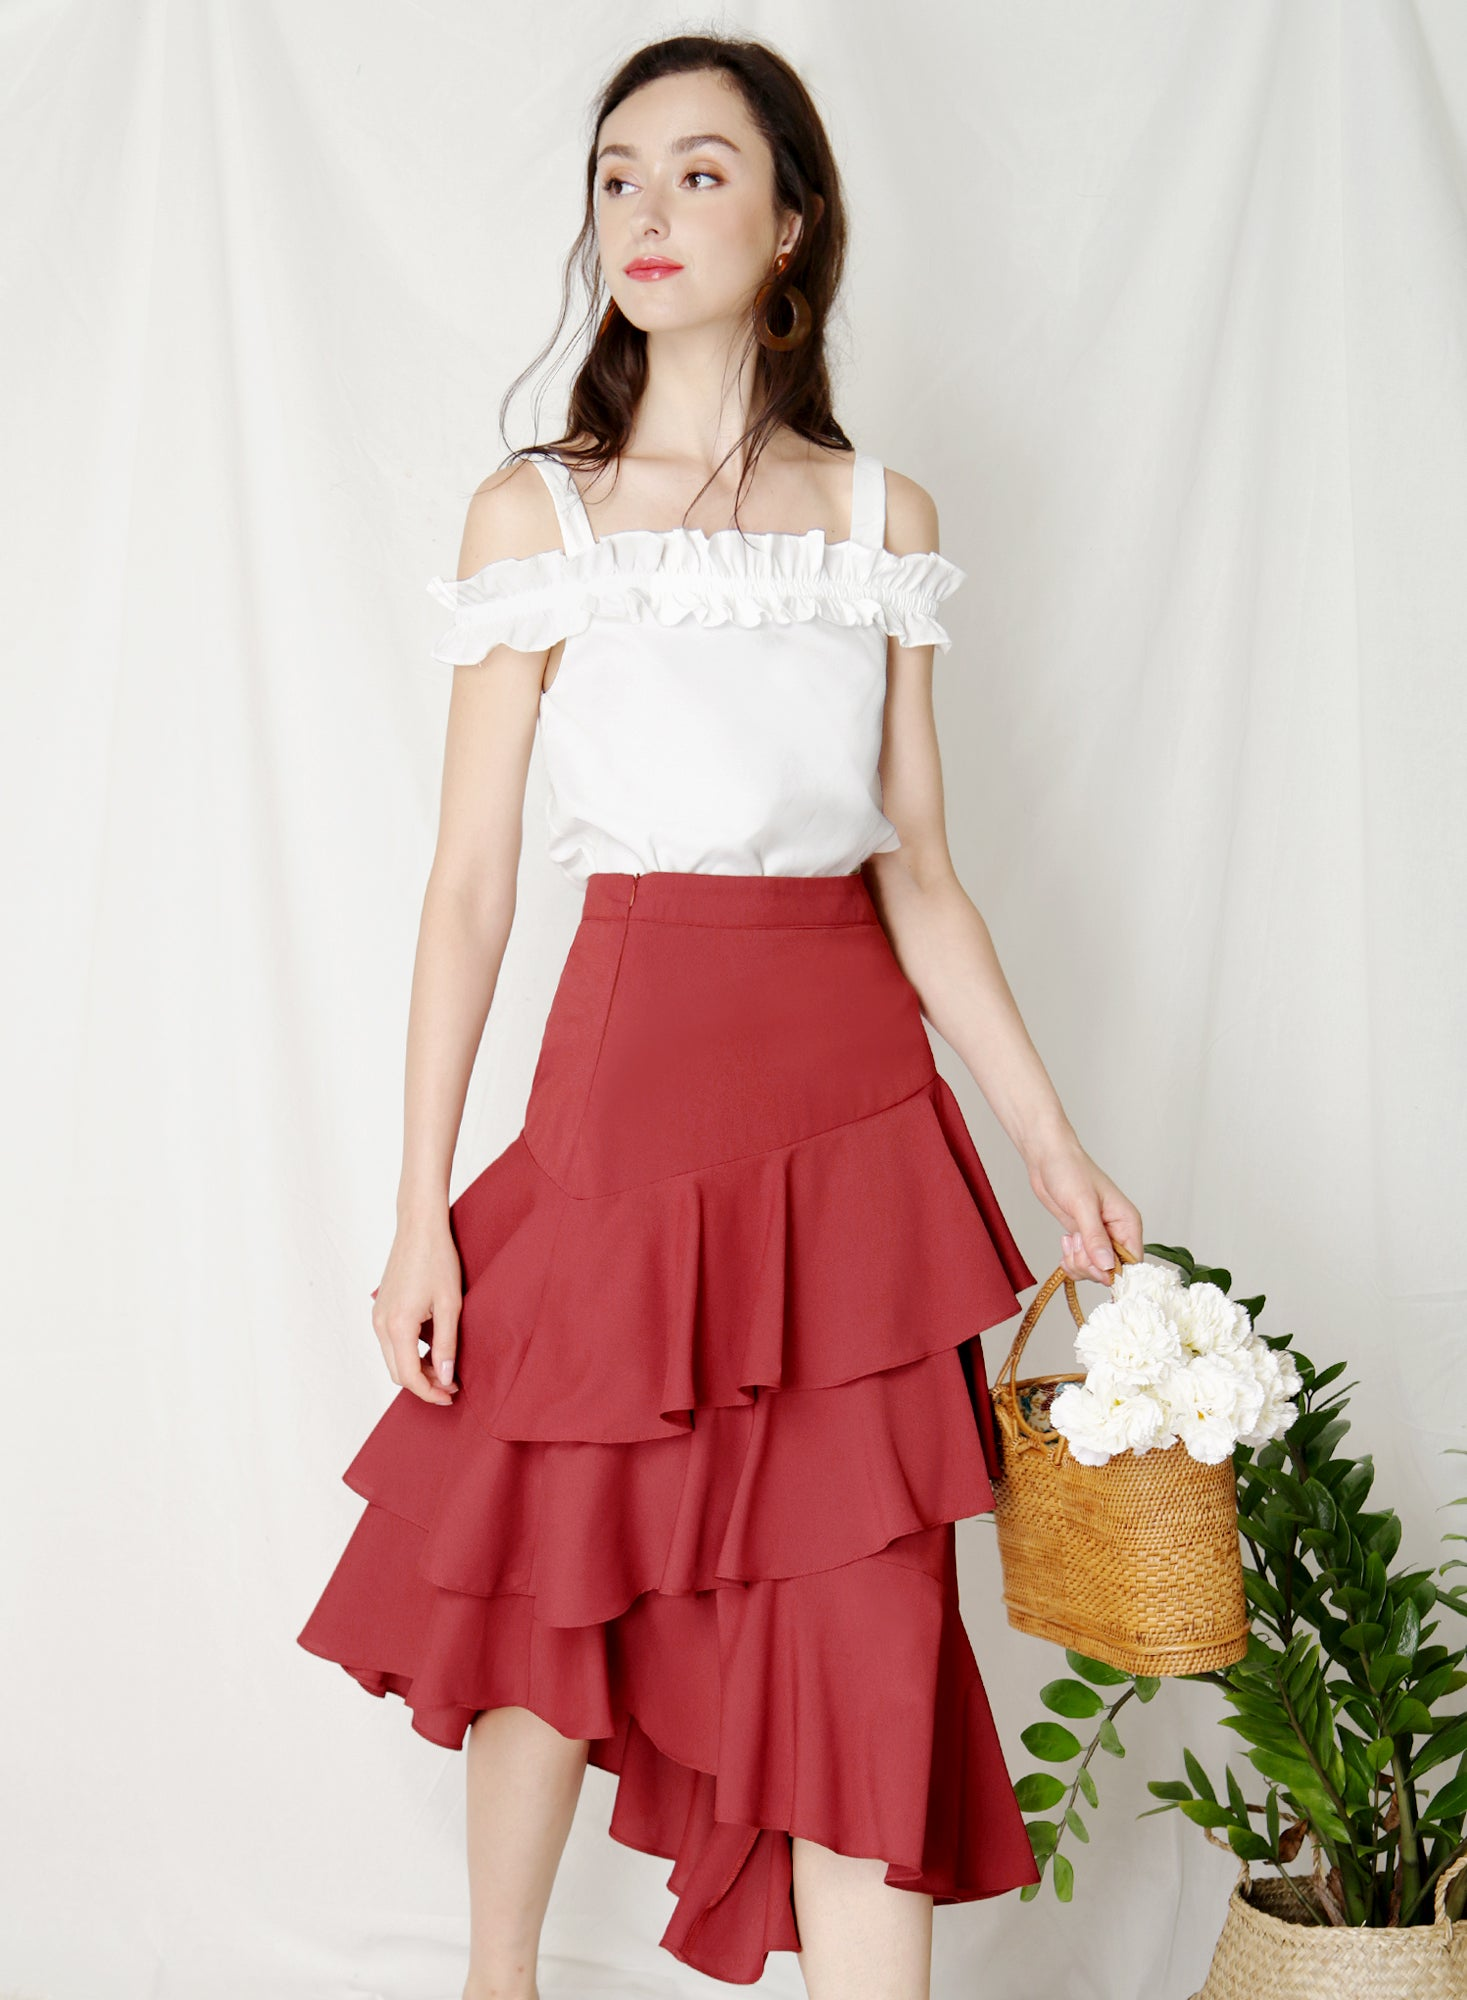 Pirouette Ruffle Tiers Skirt (Rust) at $ 39.50 only sold at And Well Dressed Online Fashion Store Singapore